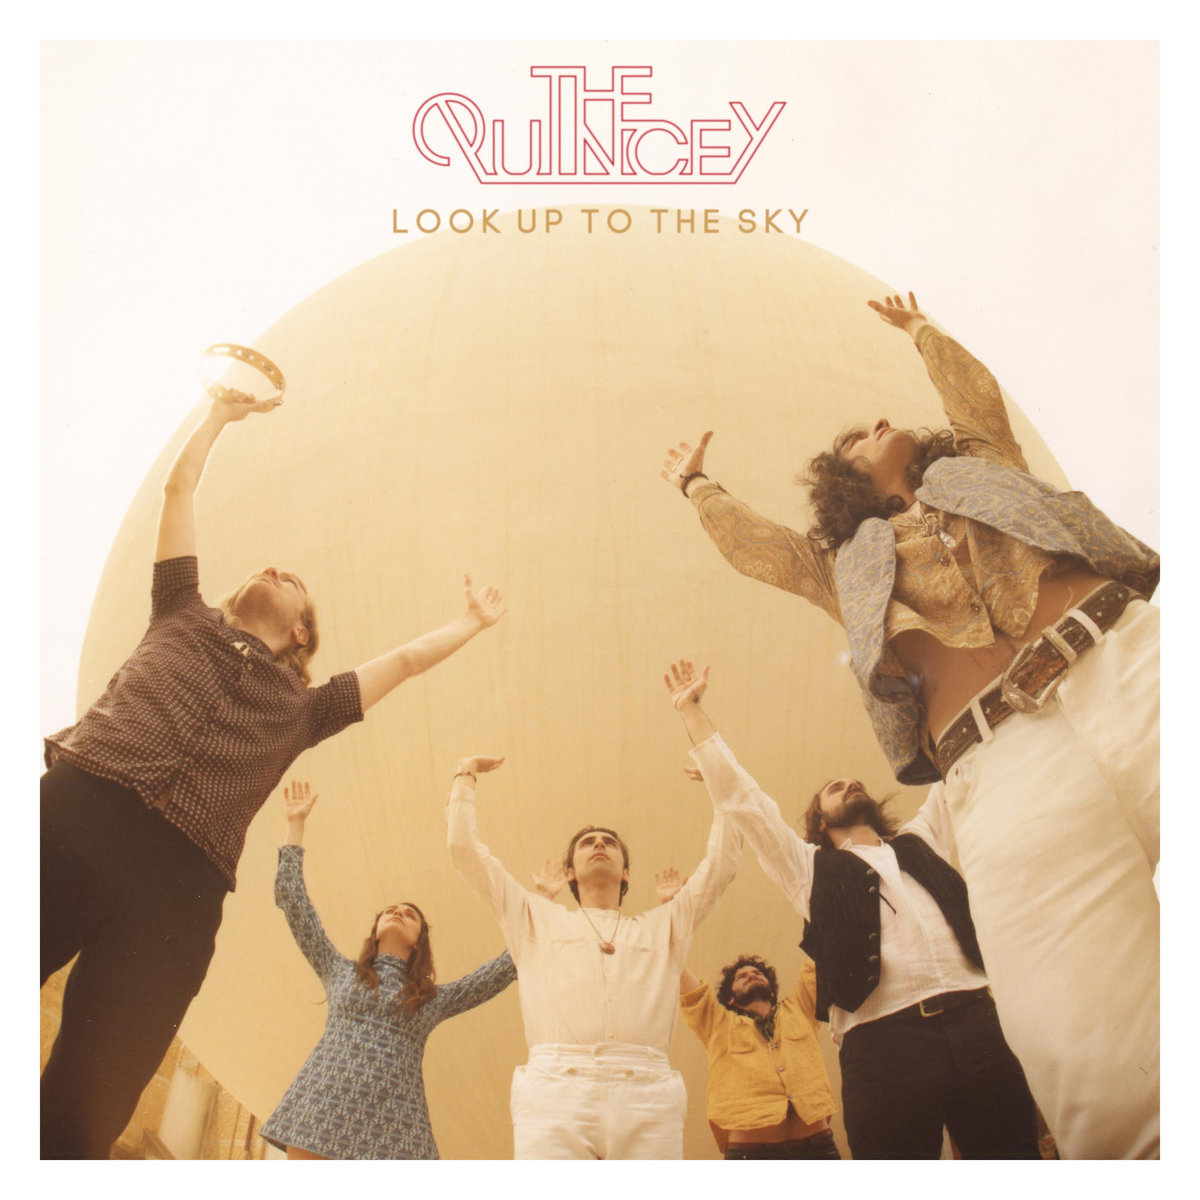 The Quincey - Cynical City @ 'Look Up To The Sky' album (alternative, united kingdom)